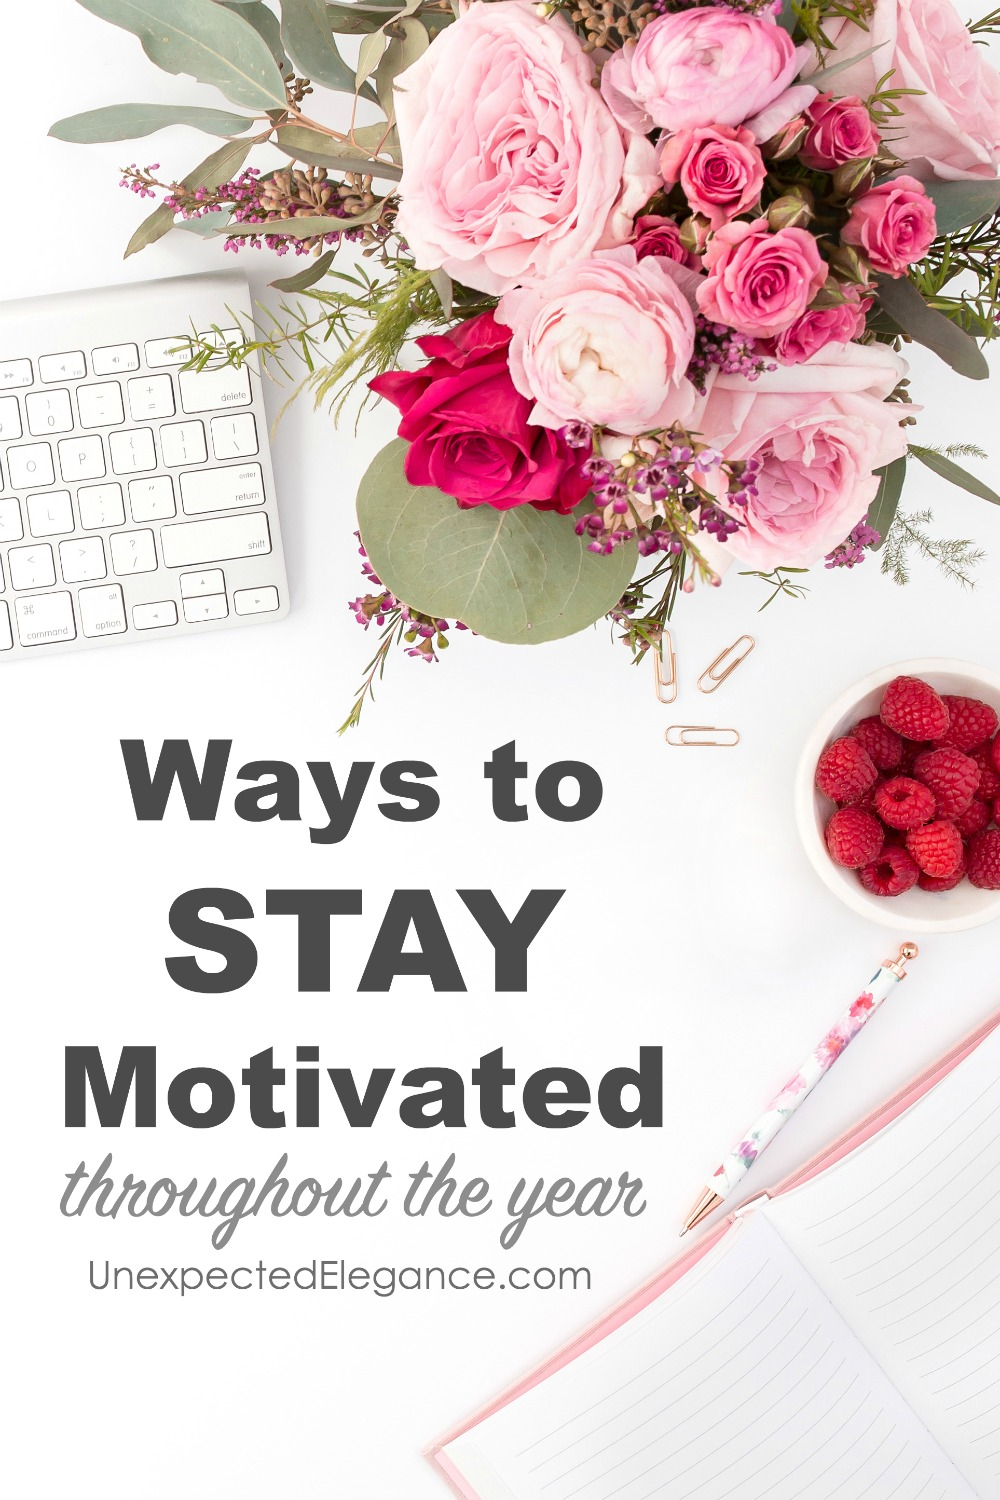 Do you struggle to stay motivated and accomplish your goals?  There are a few things you can do to keep yourself on track this year...it's never too late to start over!